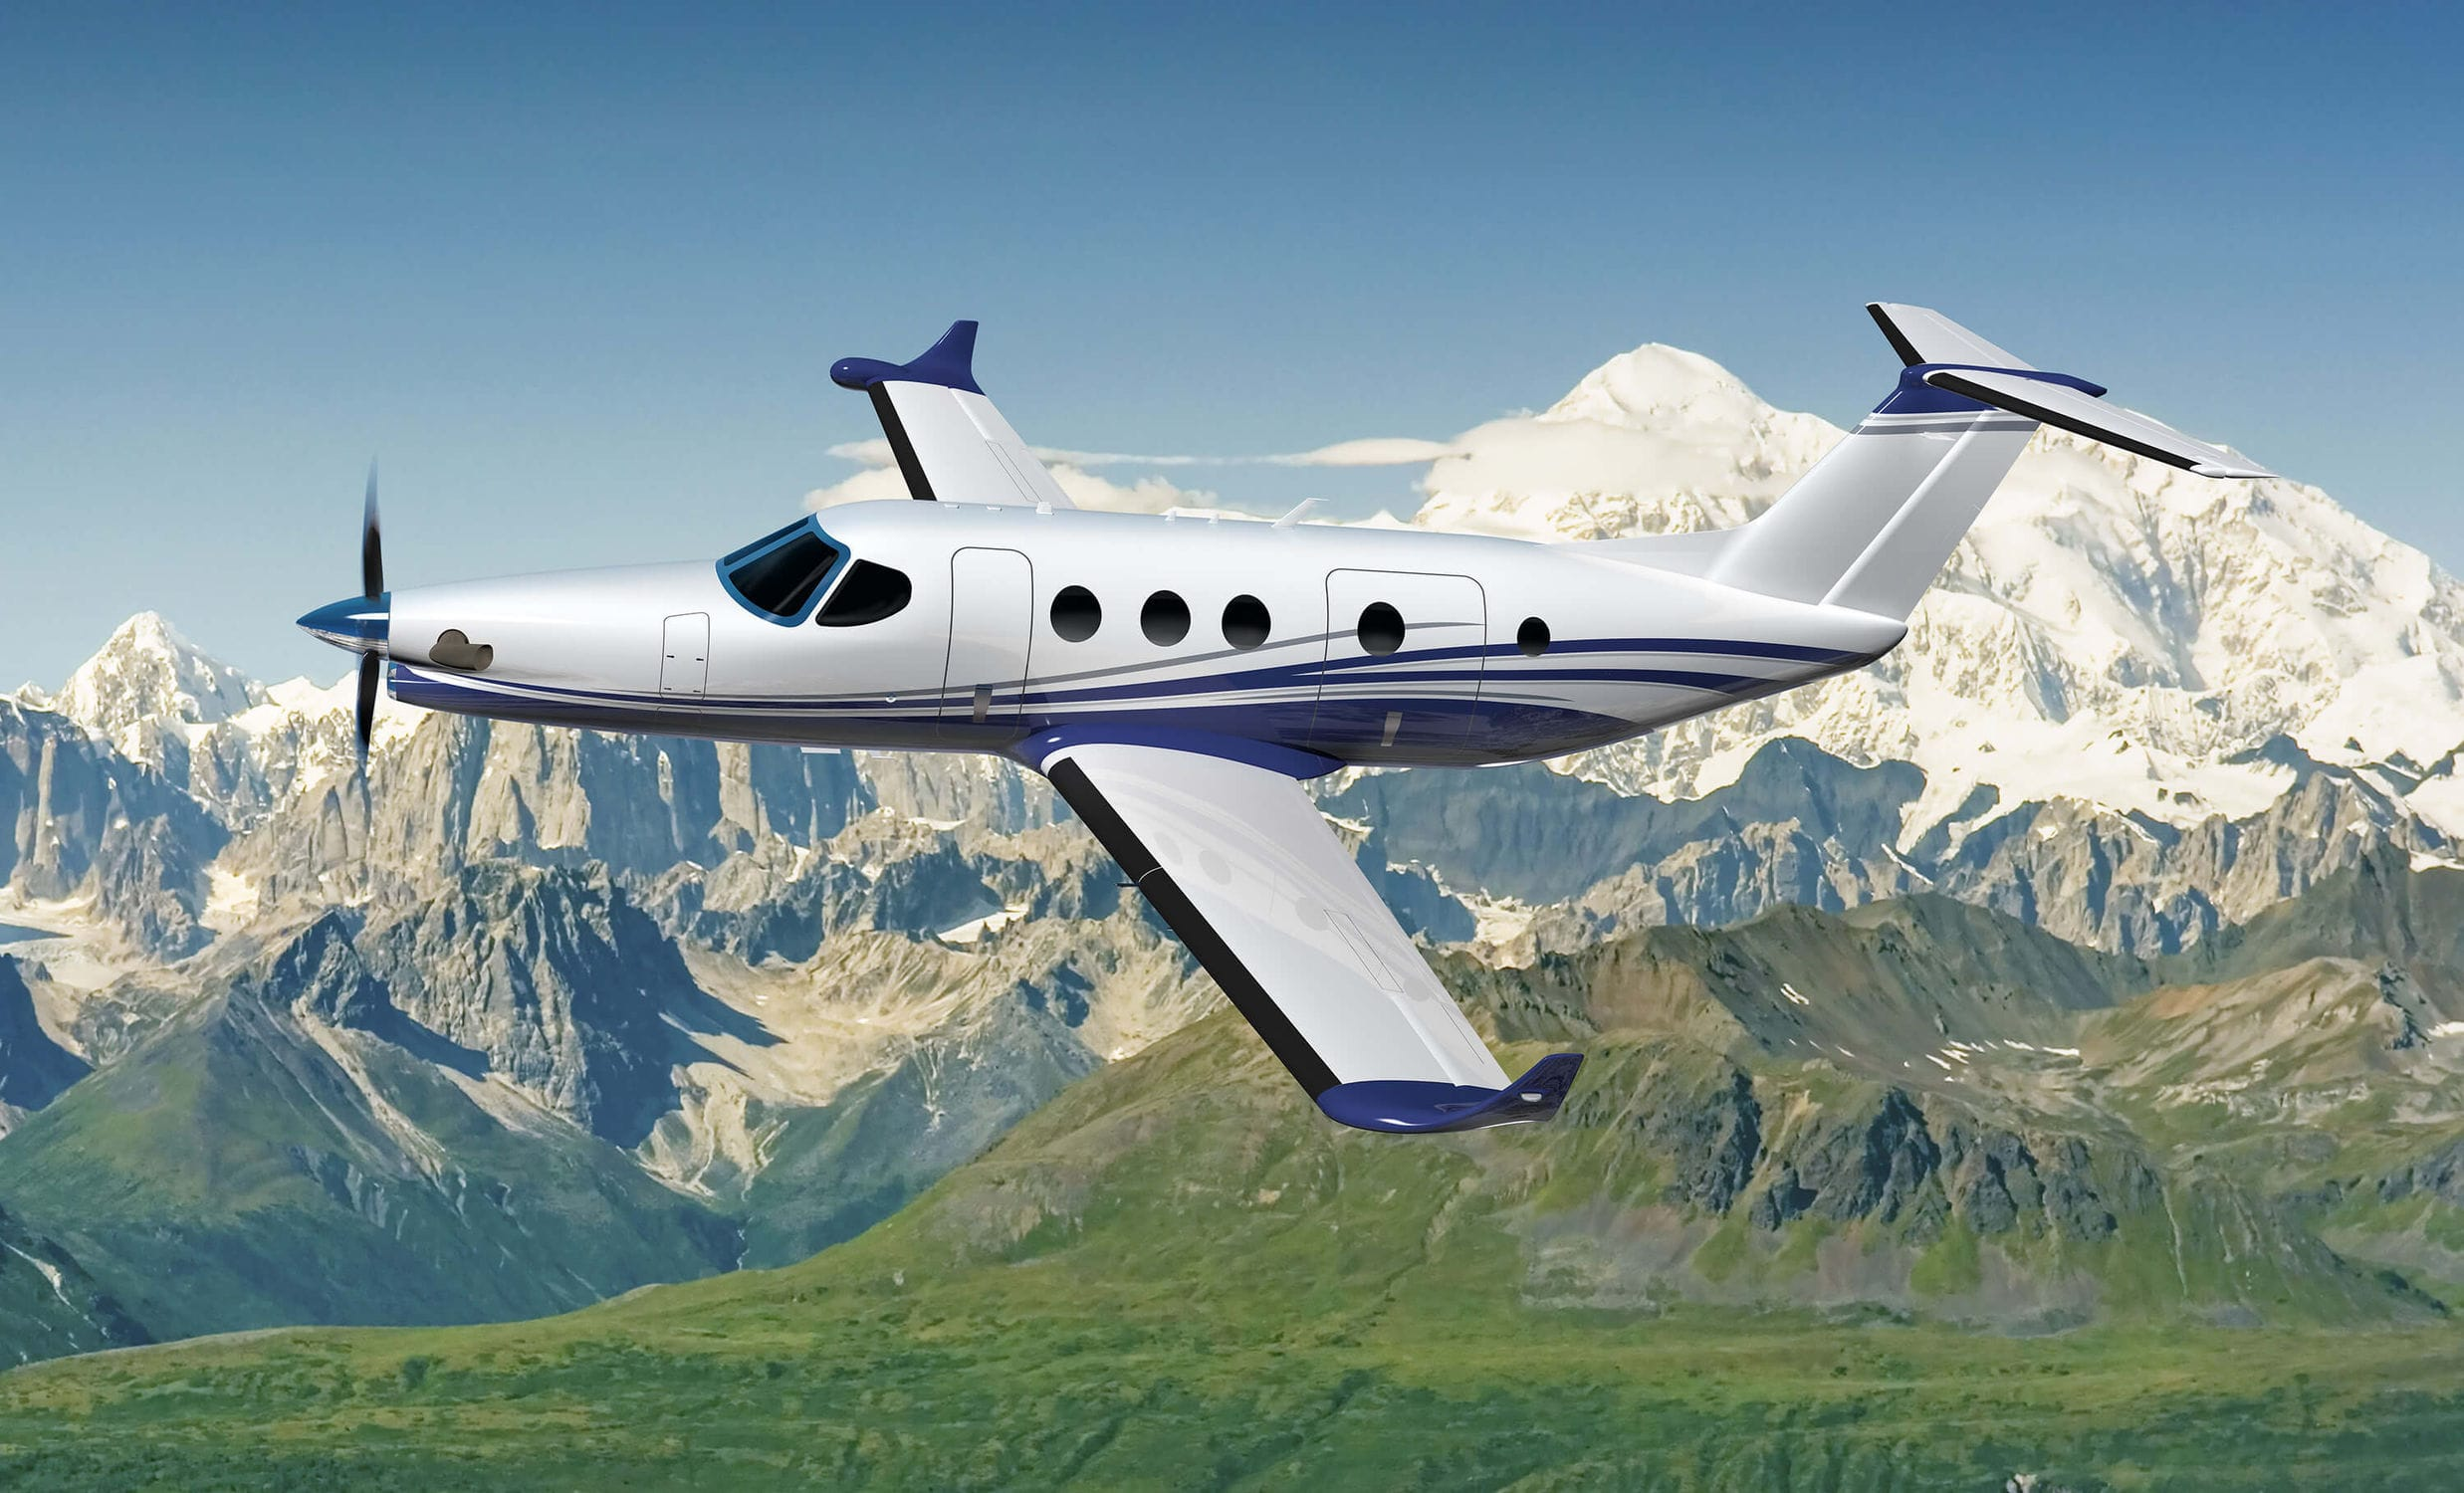 8-seater private plane / 9-seater / 10-seater / 11-seater